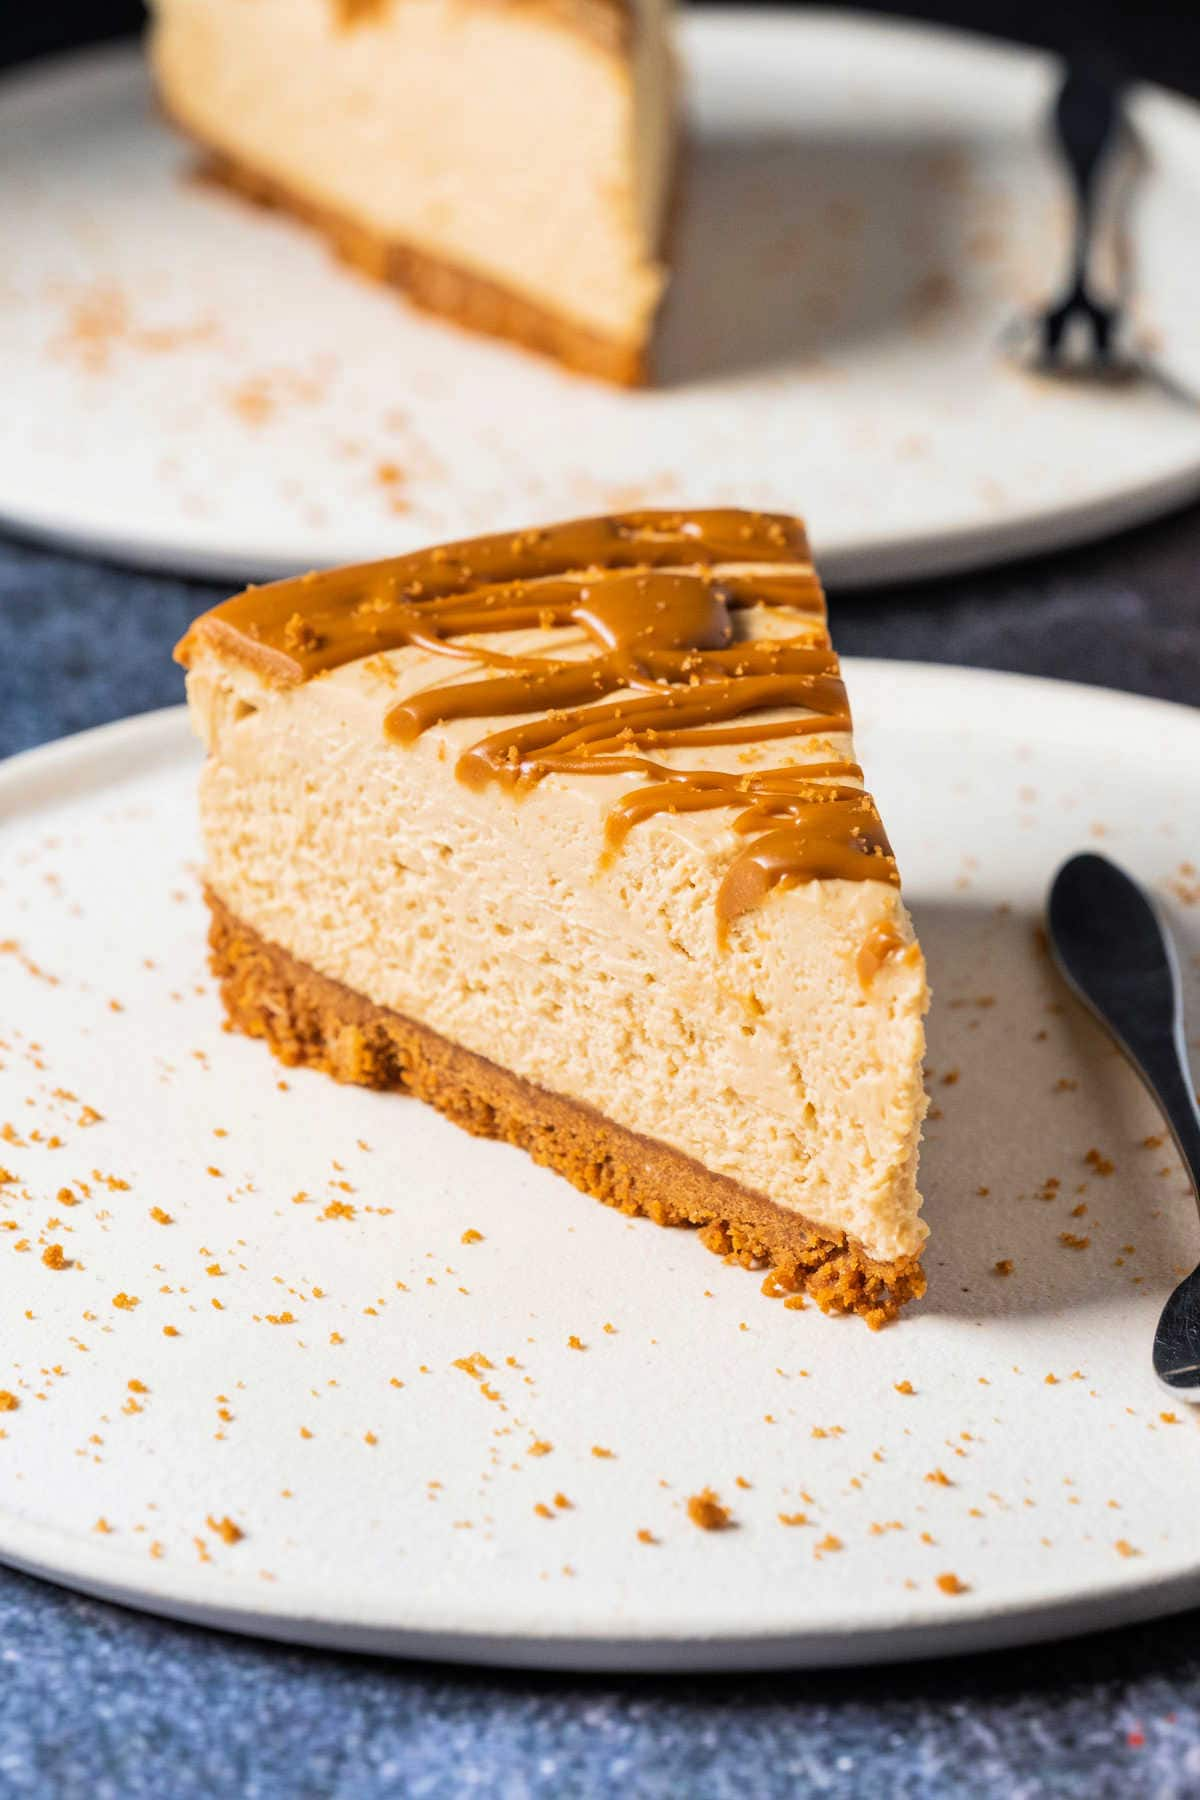 Slice of biscoff cheesecake on a white plate with a cake fork.